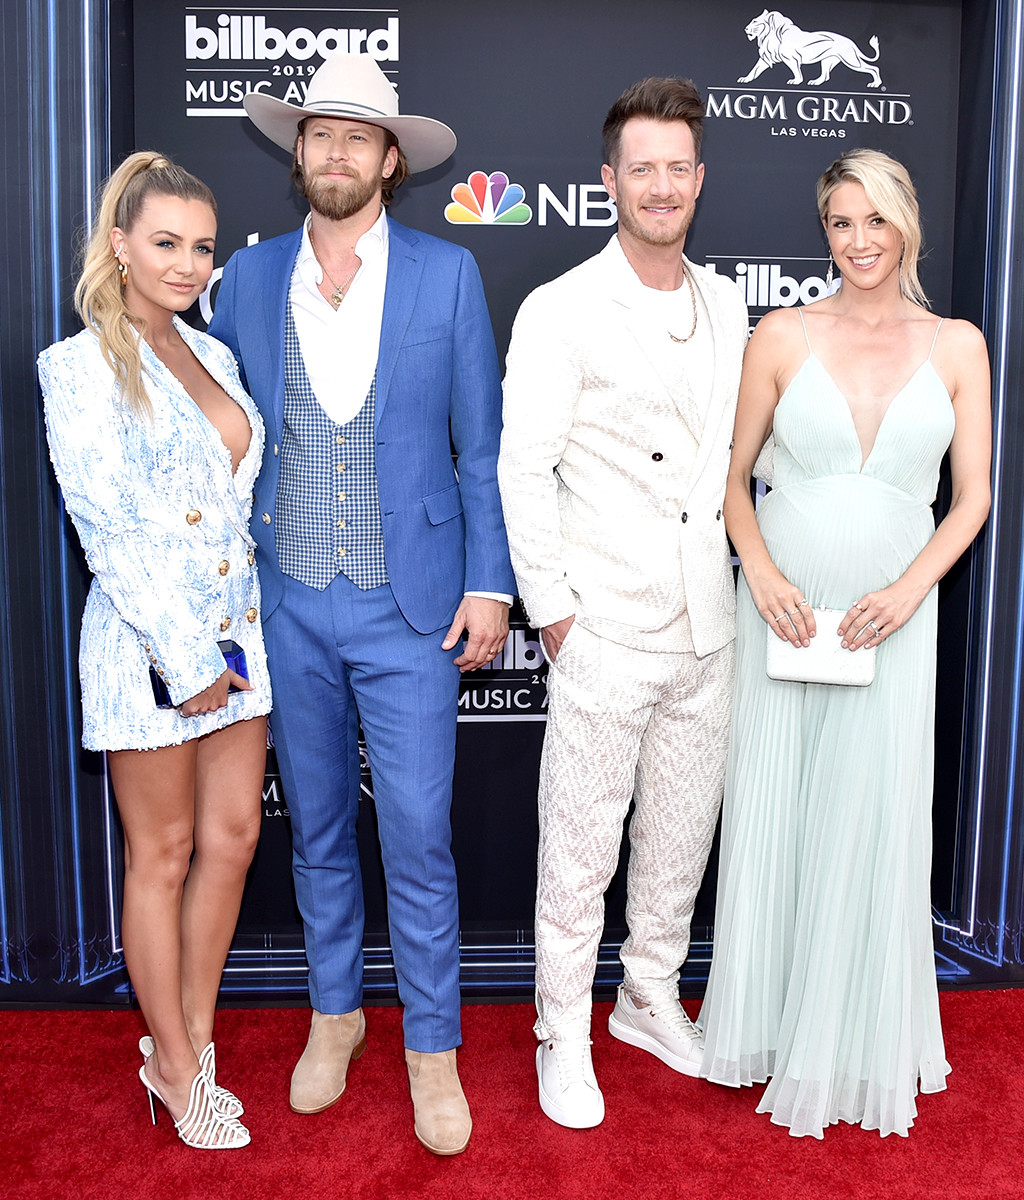 Brittney Marie Cole, Brian Kelley, Tyler Hubbard,Hayley Stommel 2019 Billboard Music Awards, Billboard Music Awards, Couples, Arrivals